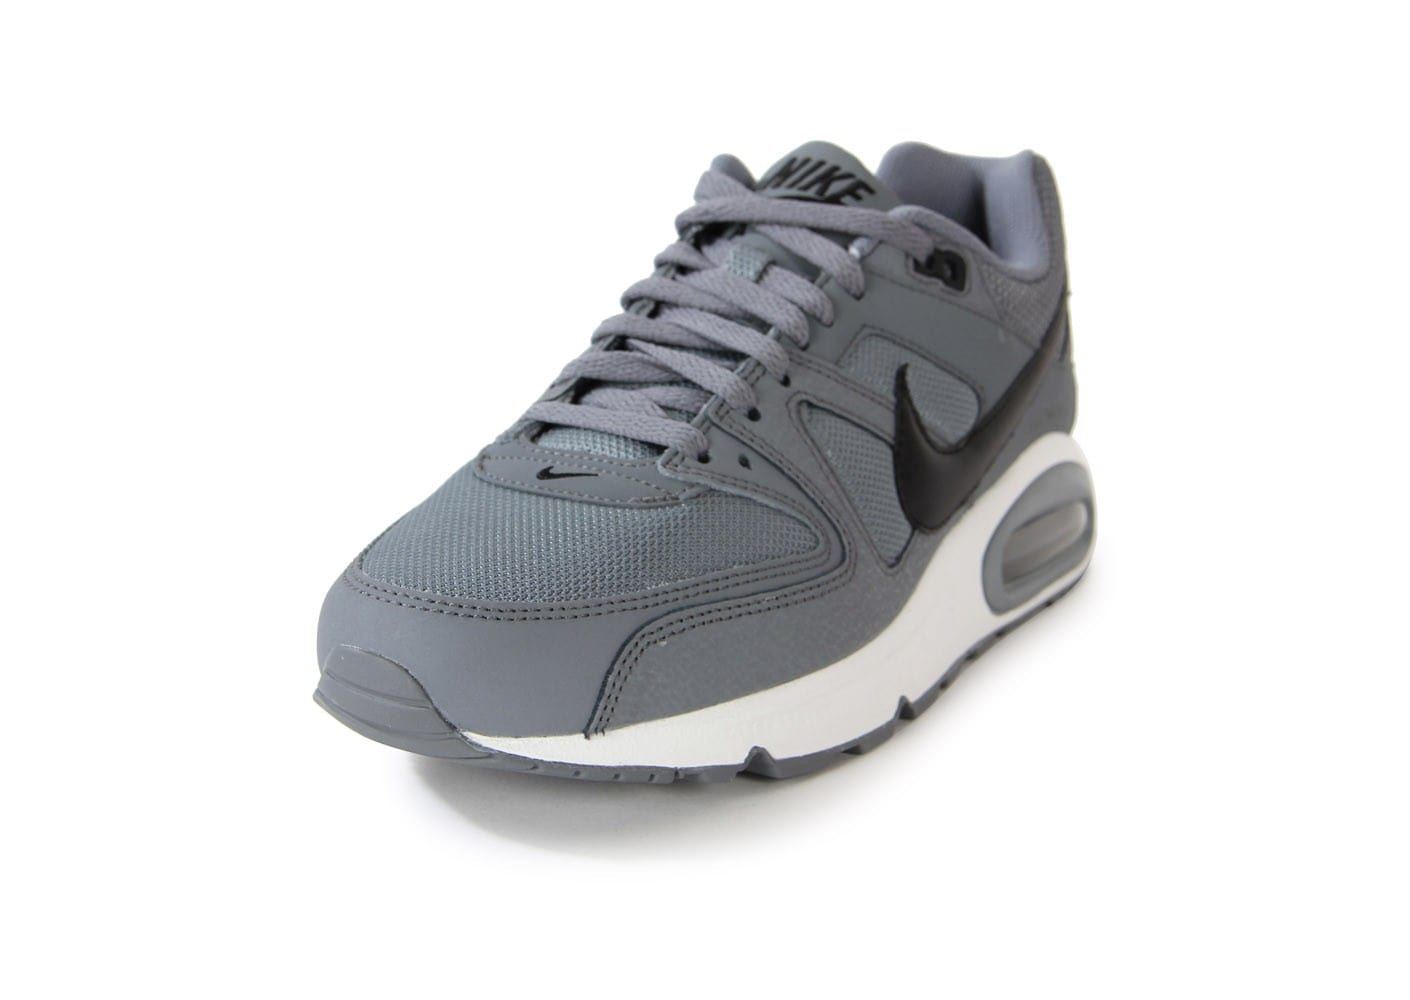 nike air max command cuir grise chaussures homme chausport. Black Bedroom Furniture Sets. Home Design Ideas